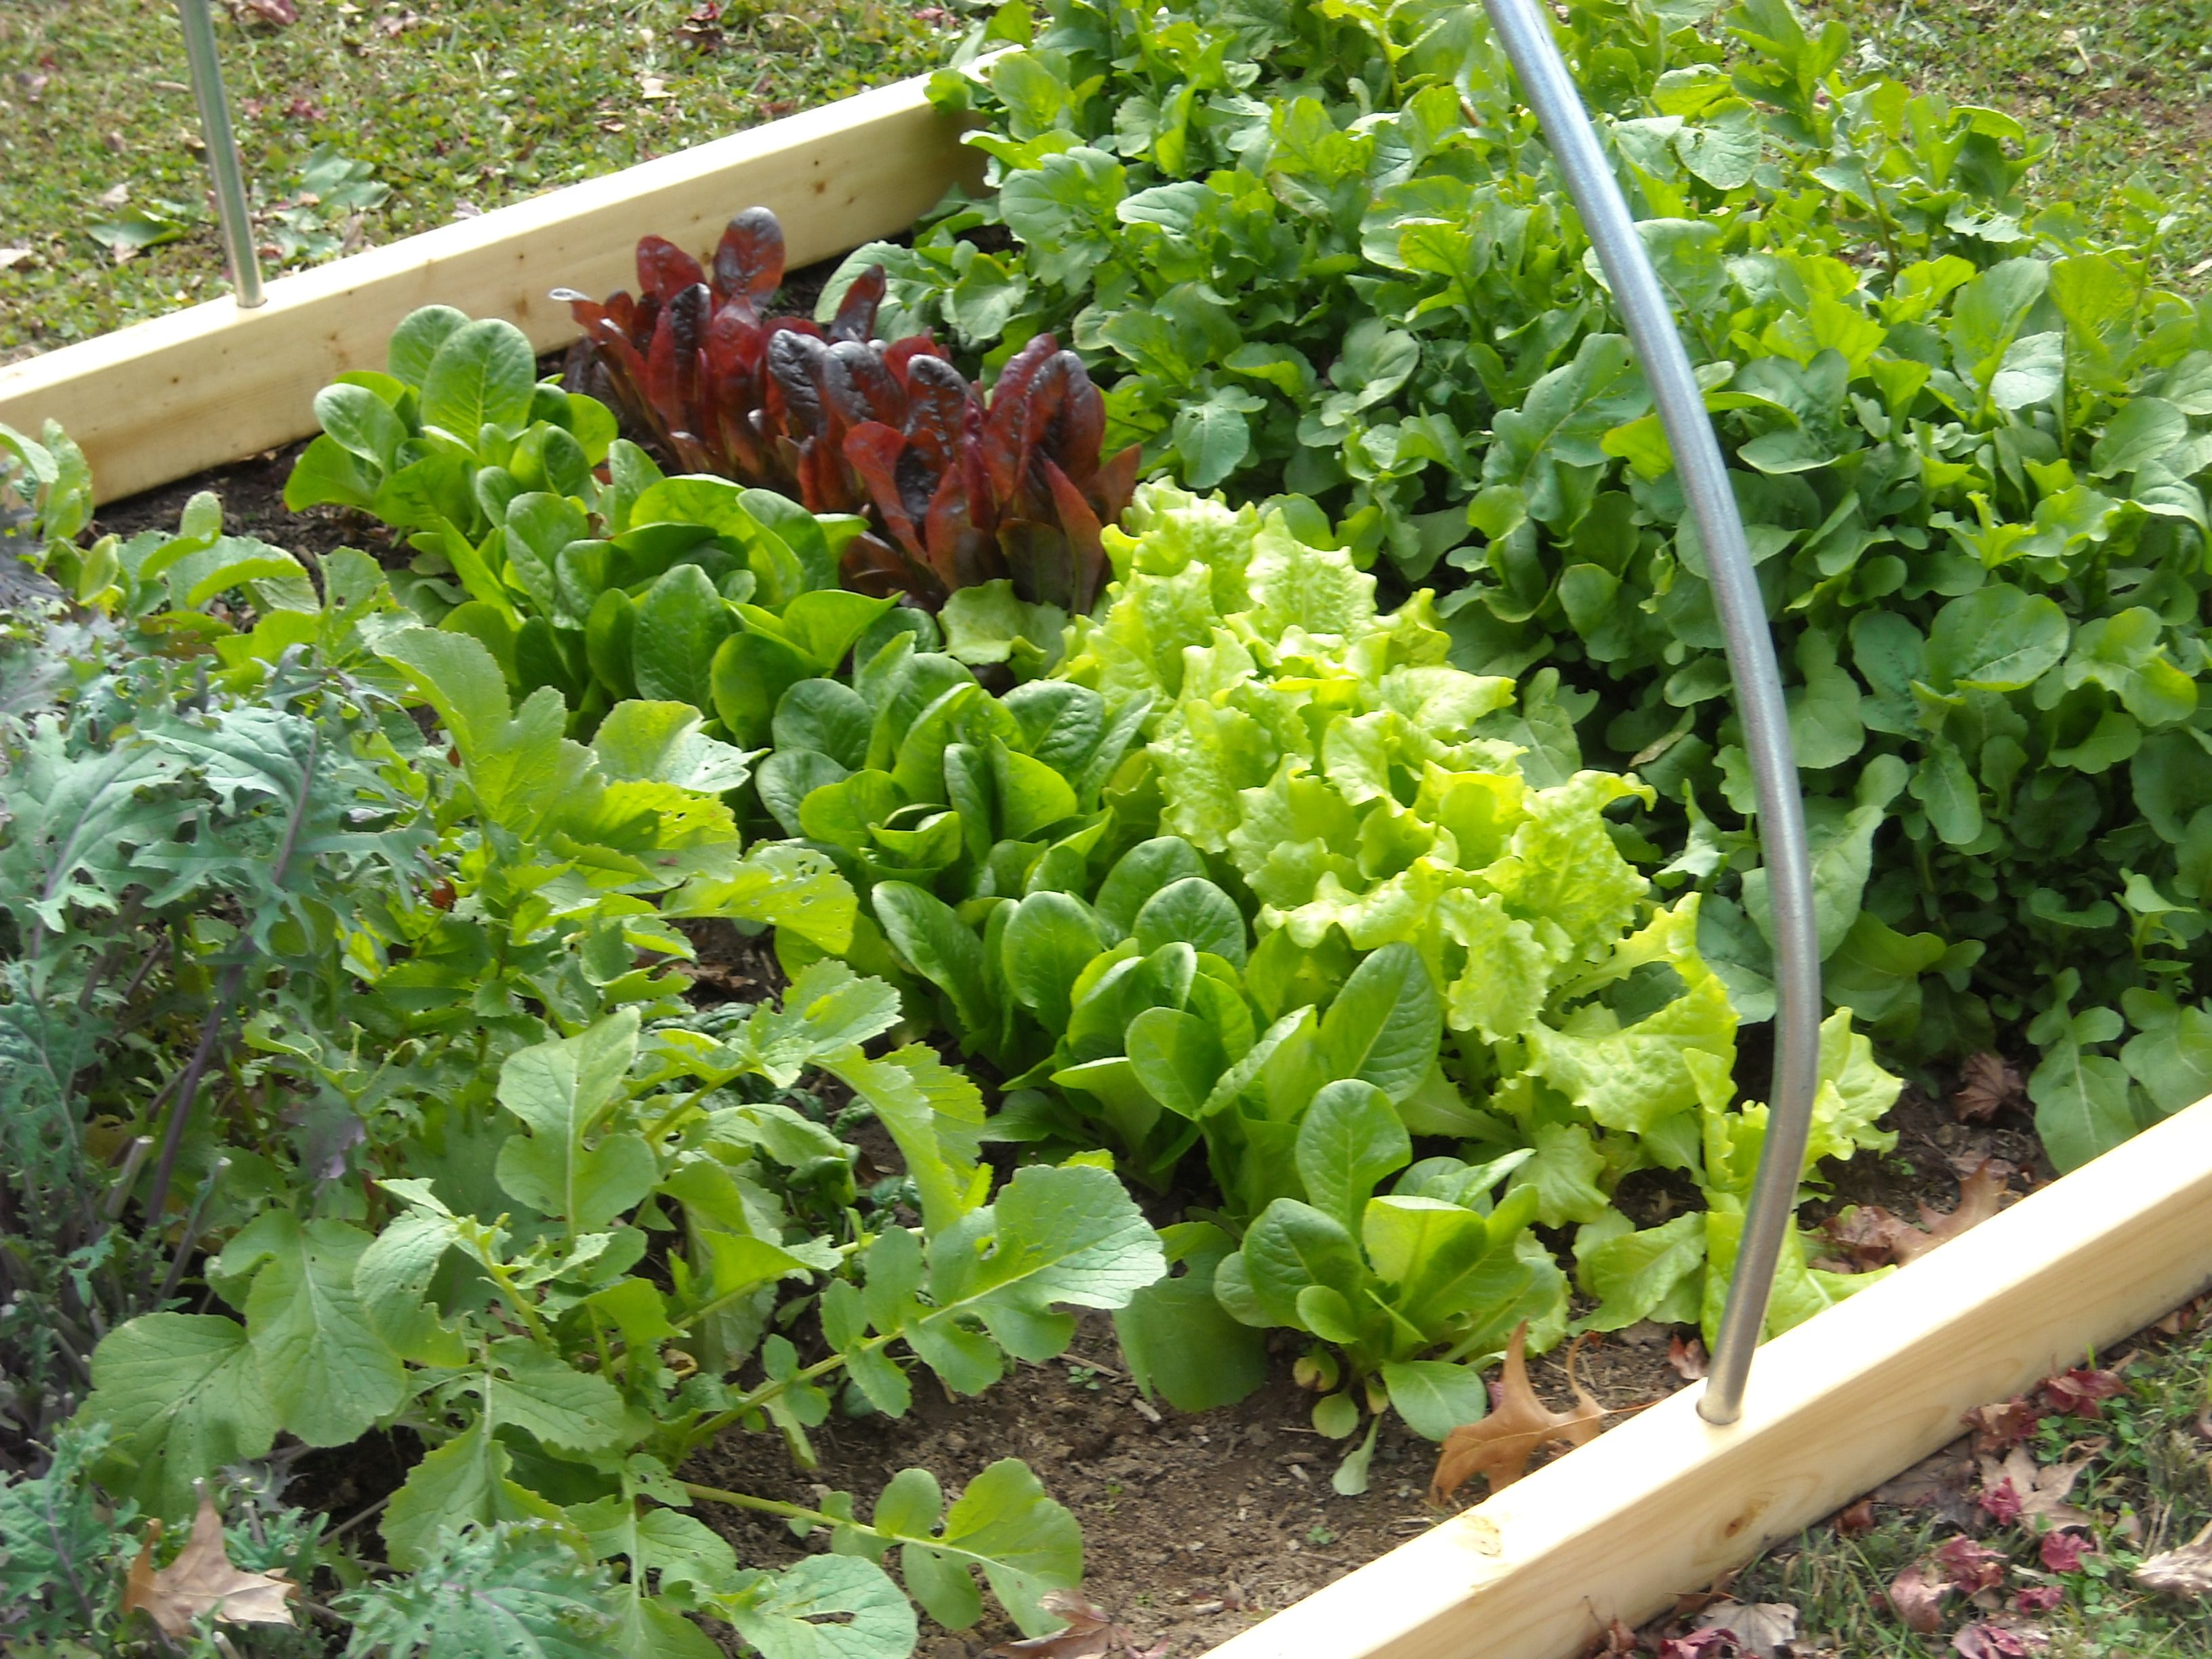 organic horticulture is the science and art of growing fruits